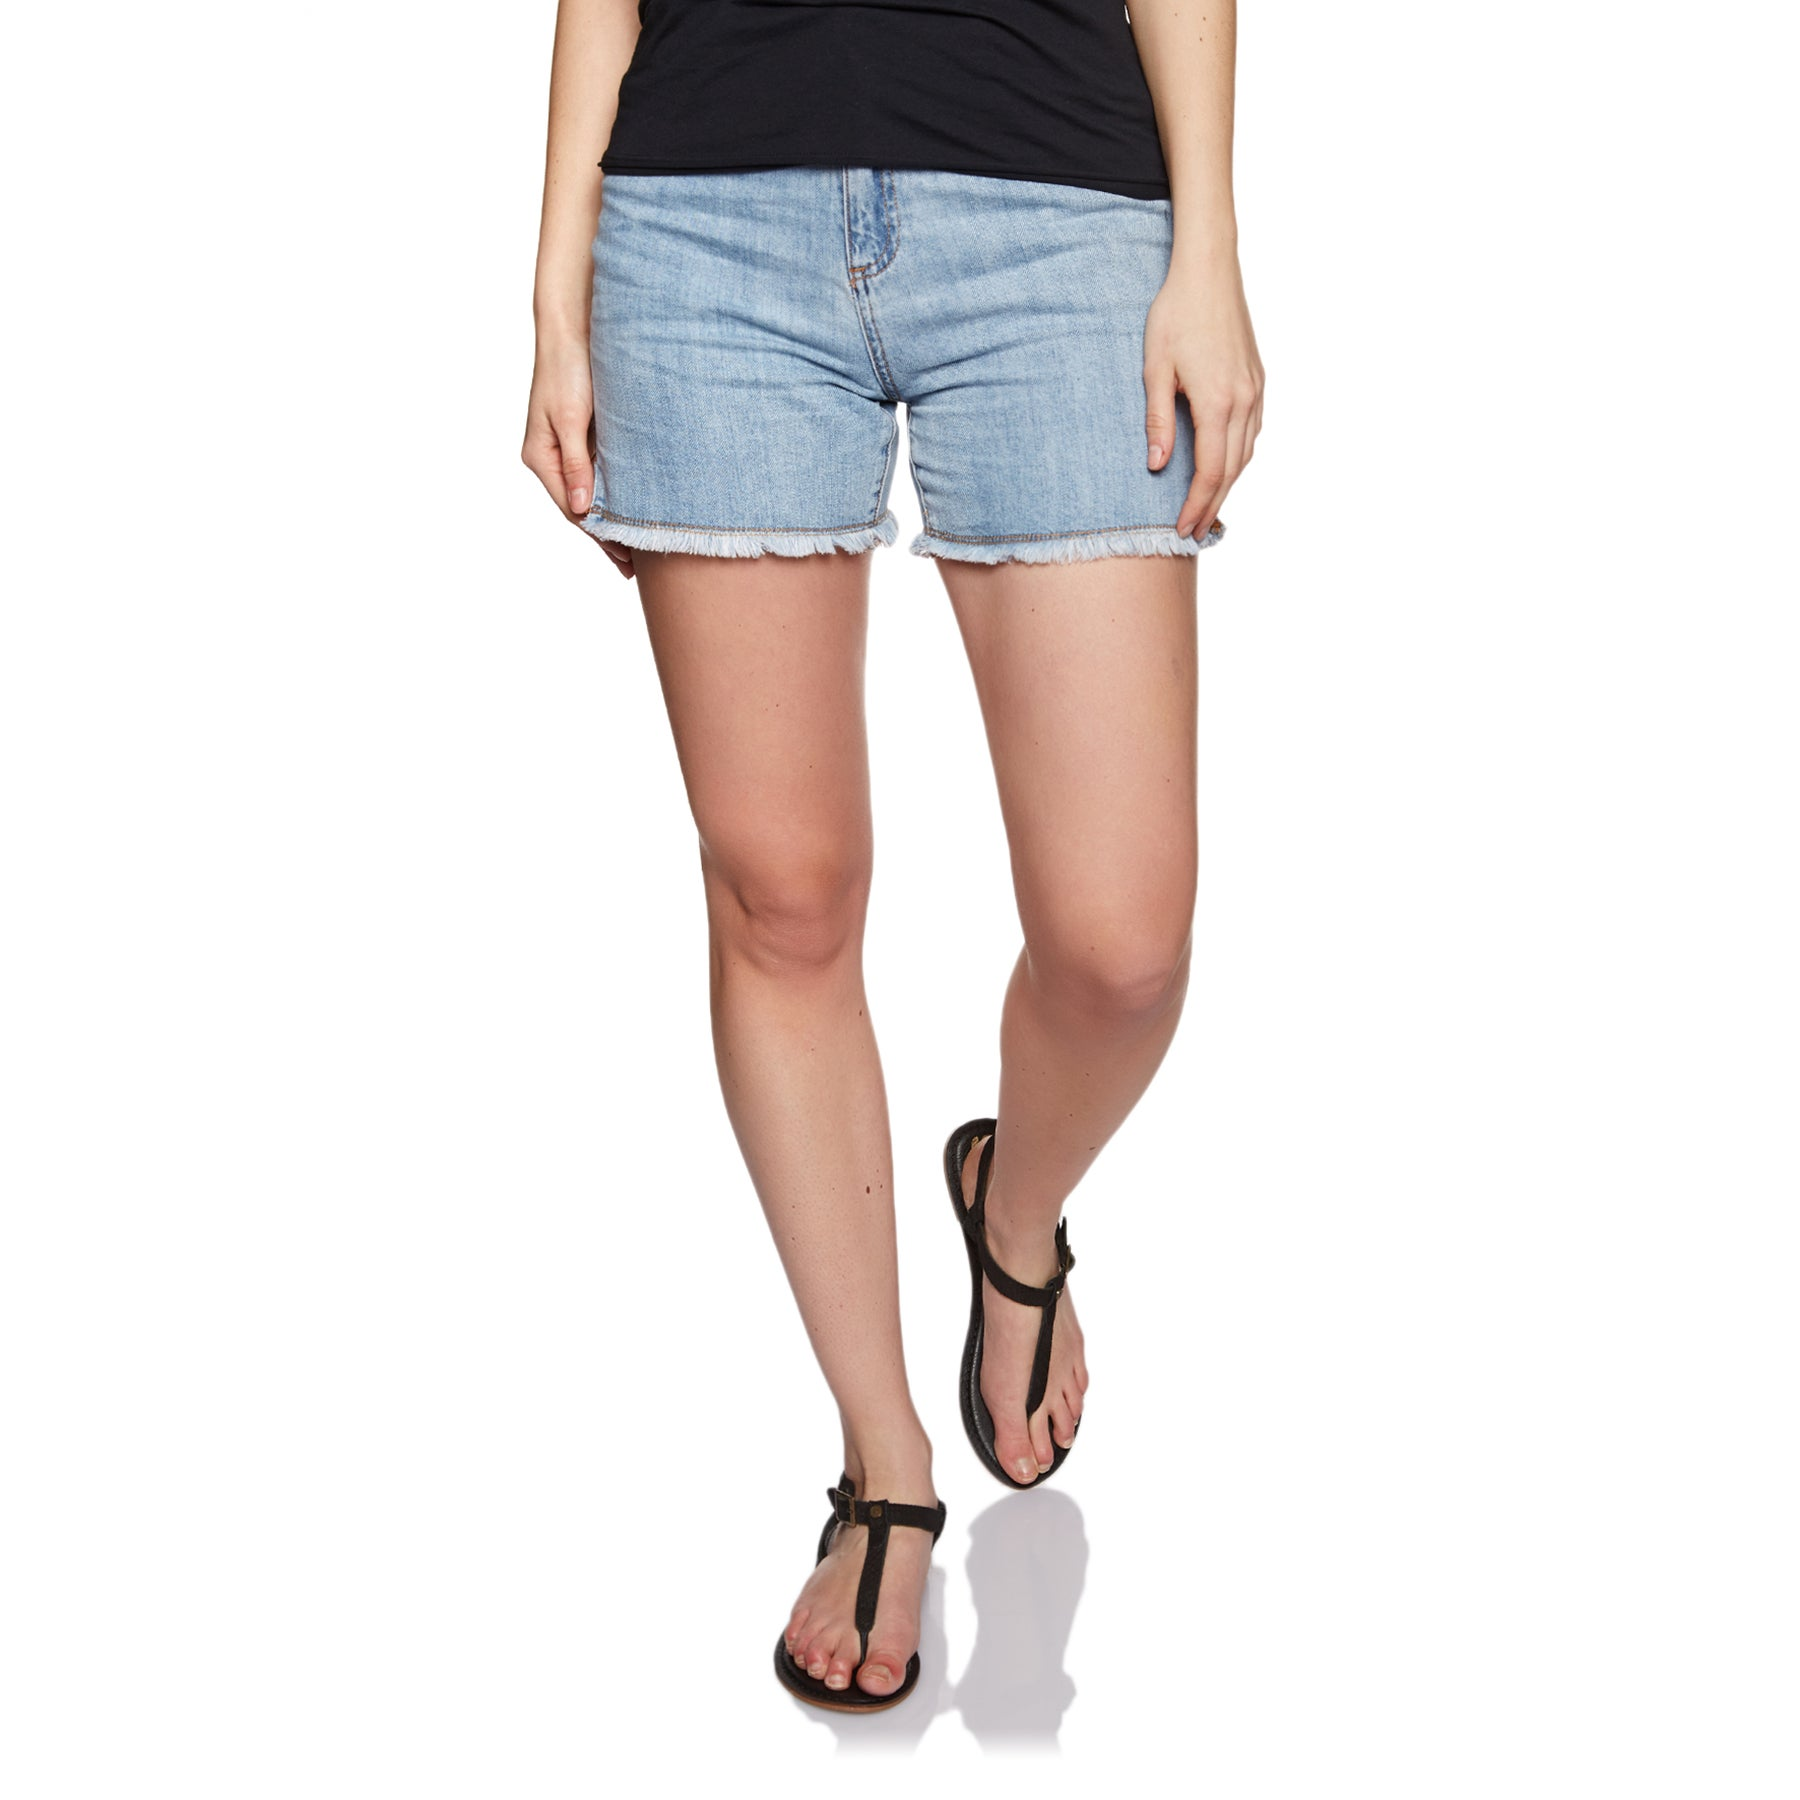 Shorts Femme Seafolly Denim Boyfriend - Pale Wash Indigo